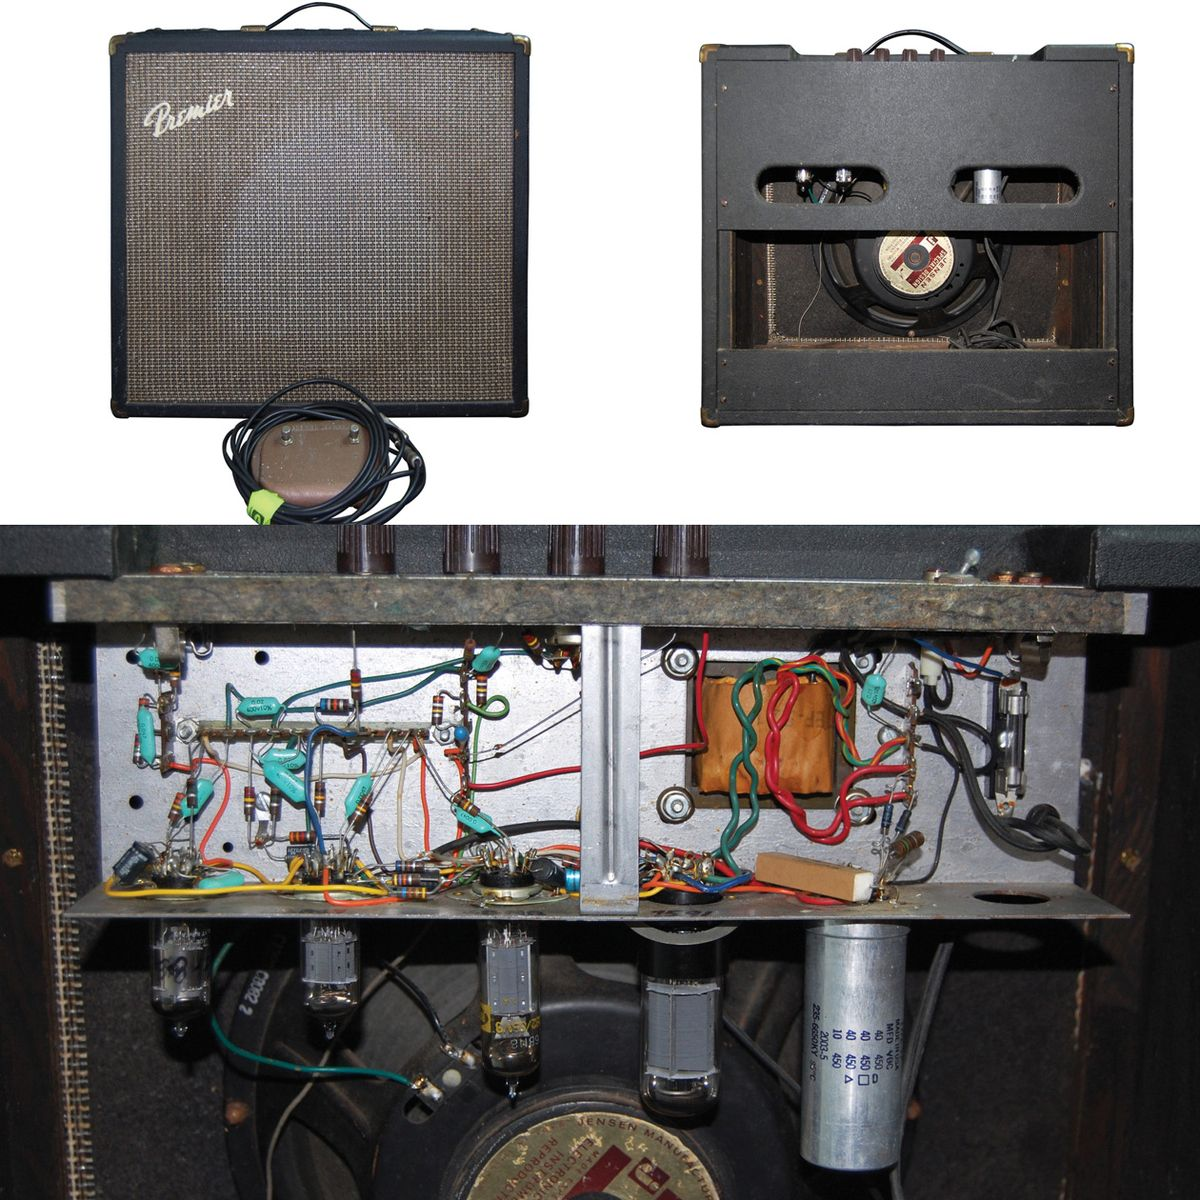 Ask Amp Man: A '60s Premier Combo Gets Cleaned up for Dirty Work